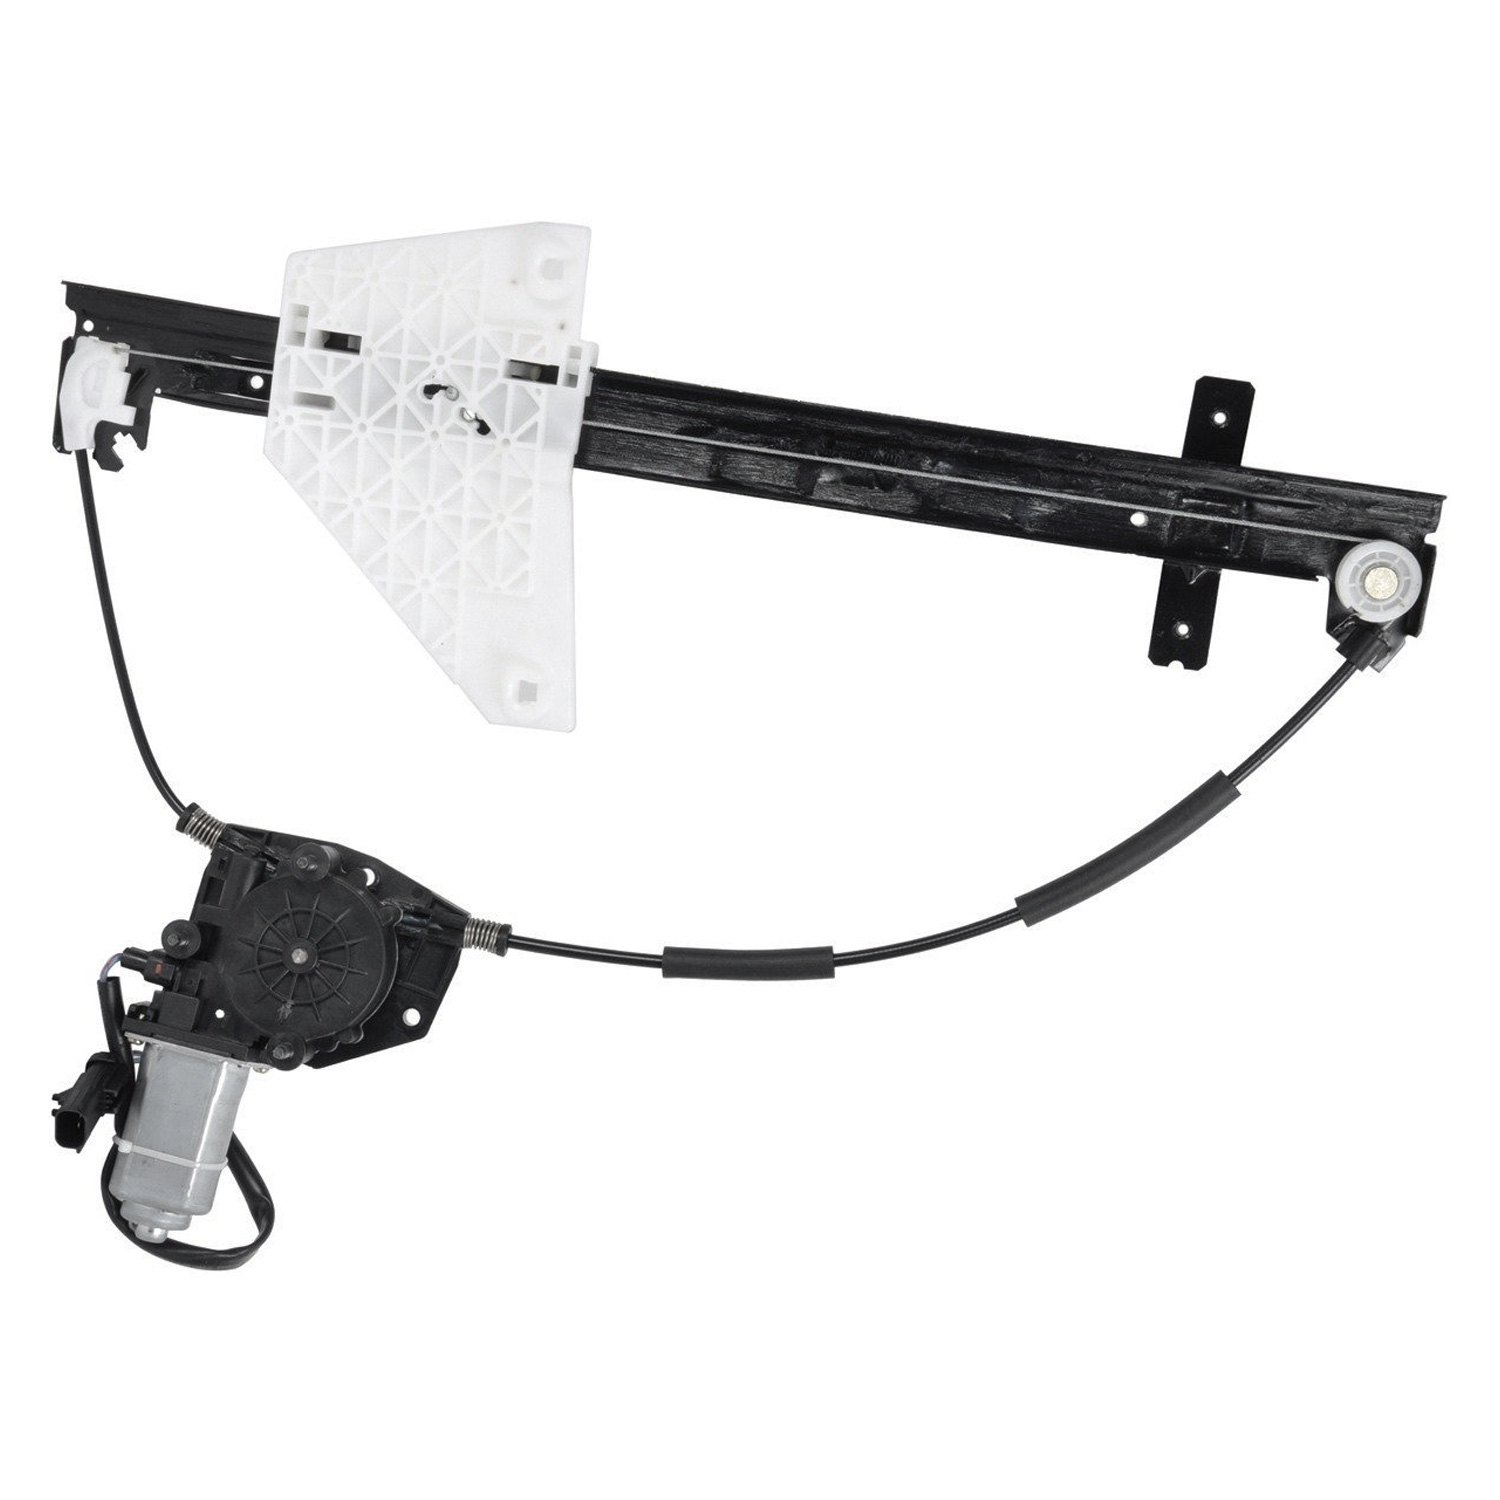 Cardone select 82 623br rear passenger side power for 1999 jeep grand cherokee window regulator replacement